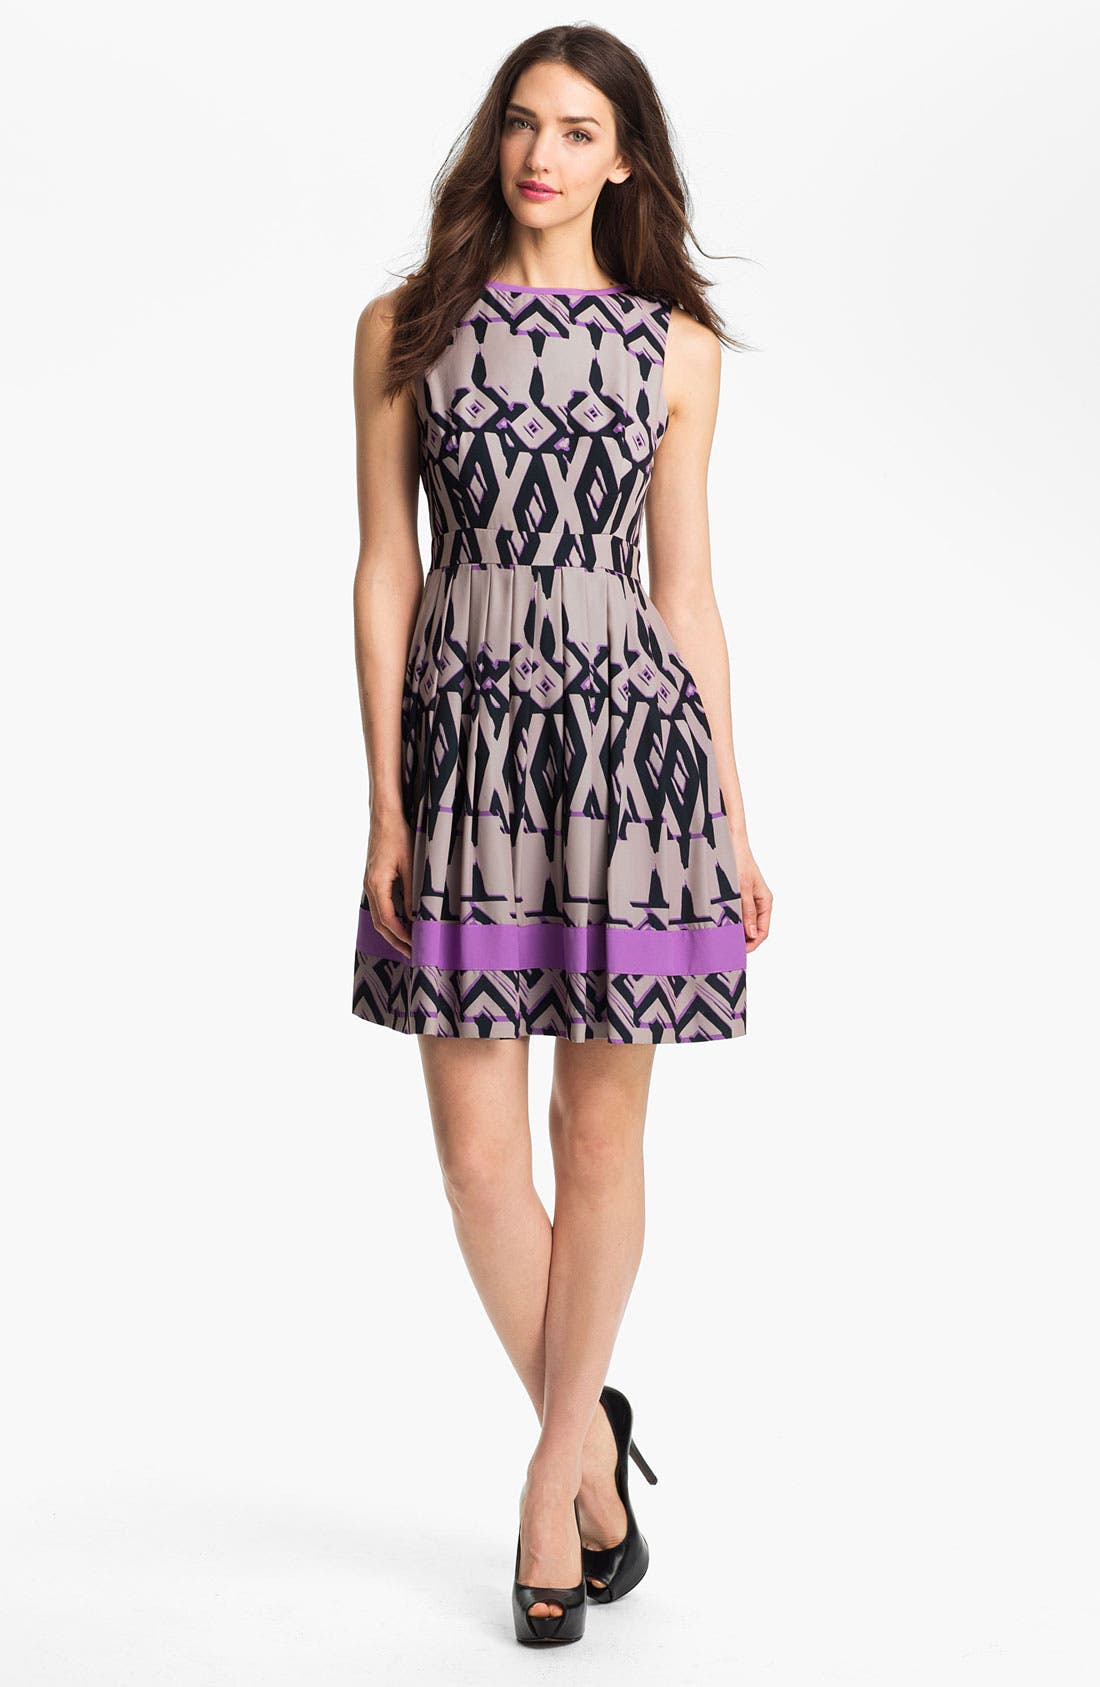 Main Image - Jessica Simpson Print Fit & Flare Dress